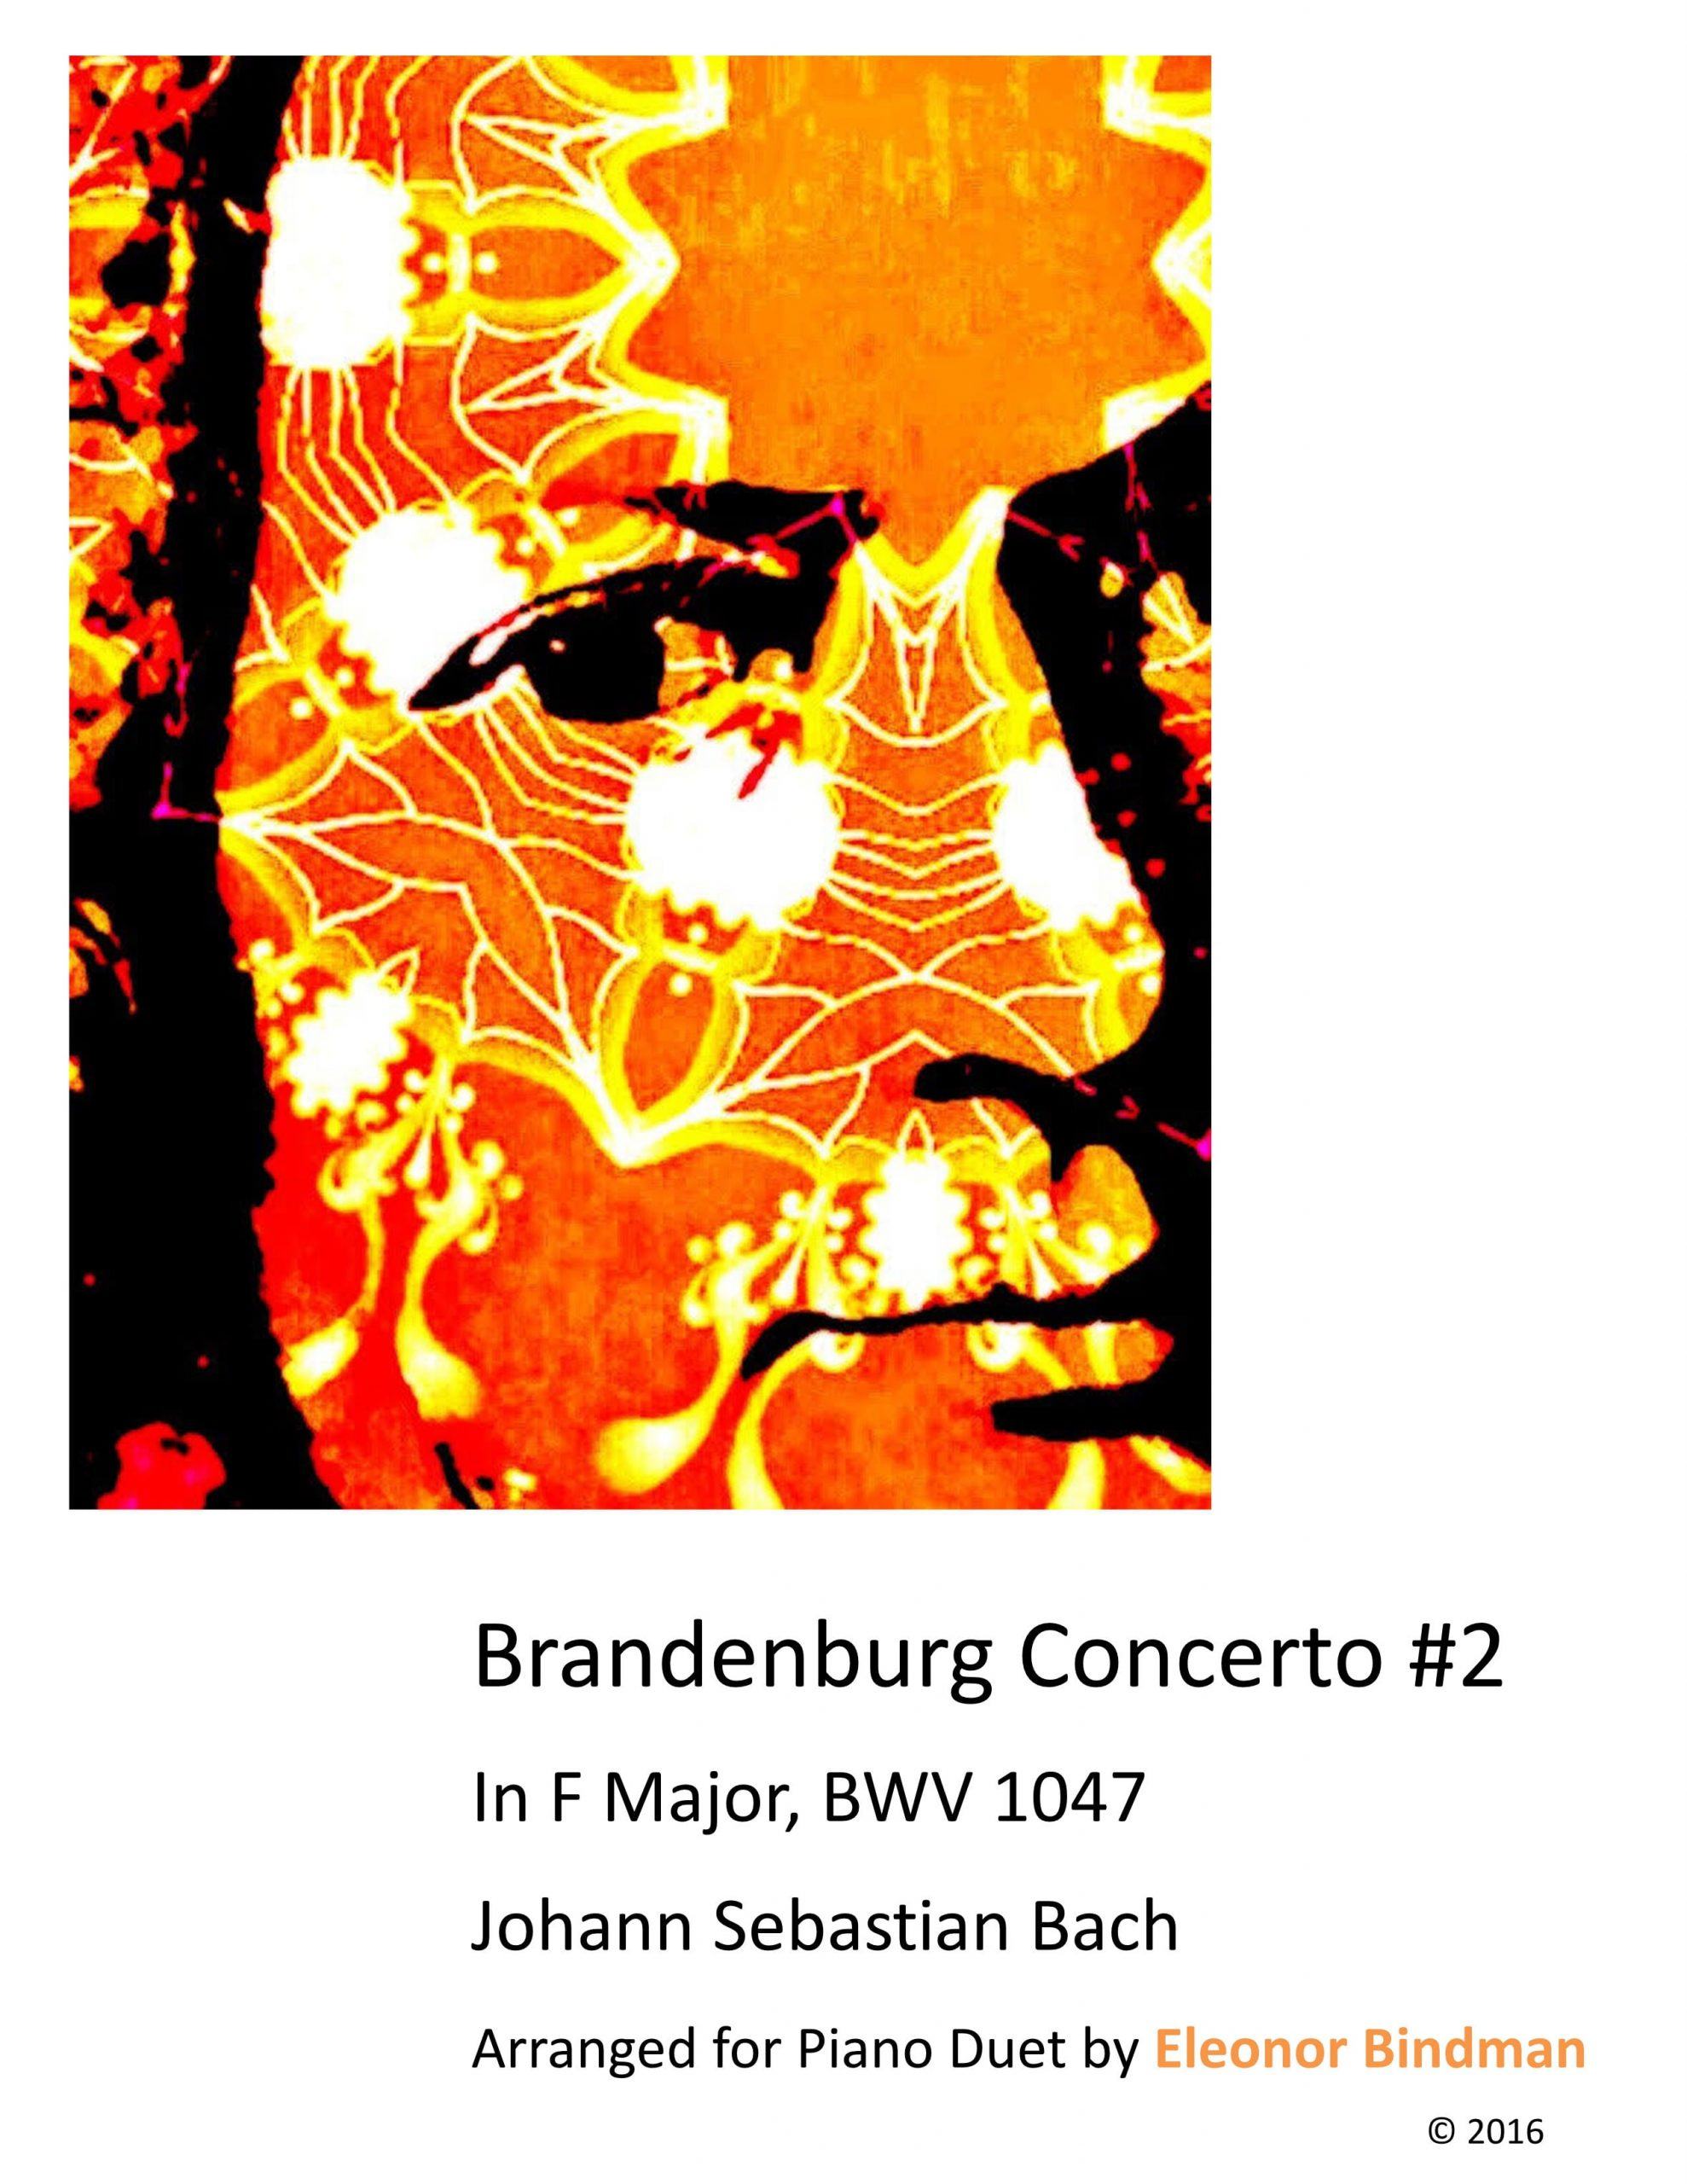 Brandenburg Concerto No. 2 Arranged for Piano Duet